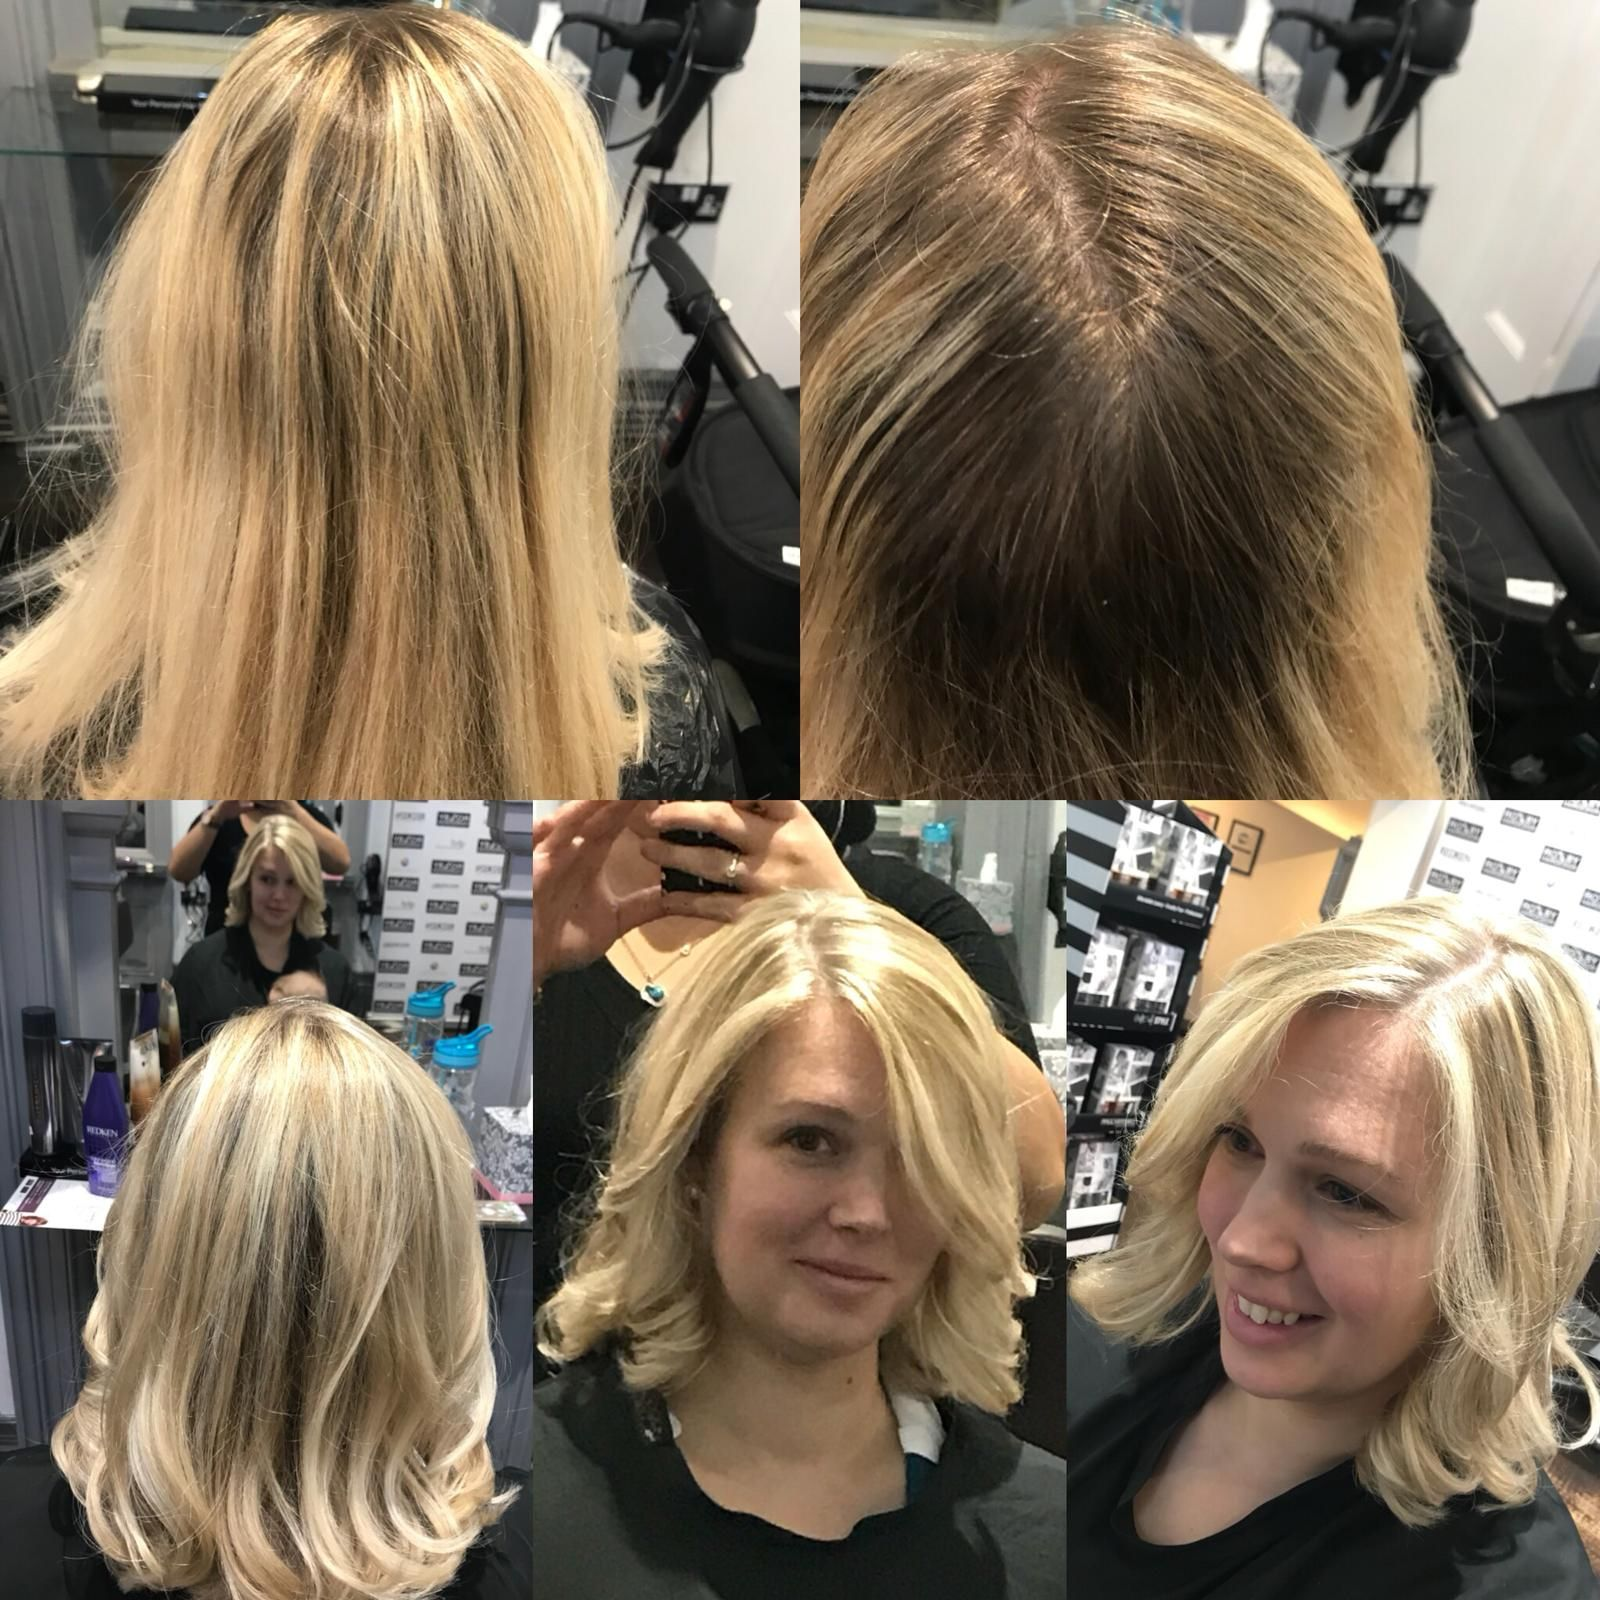 Mel's brightened up this lovely client's hair! How can we brighten